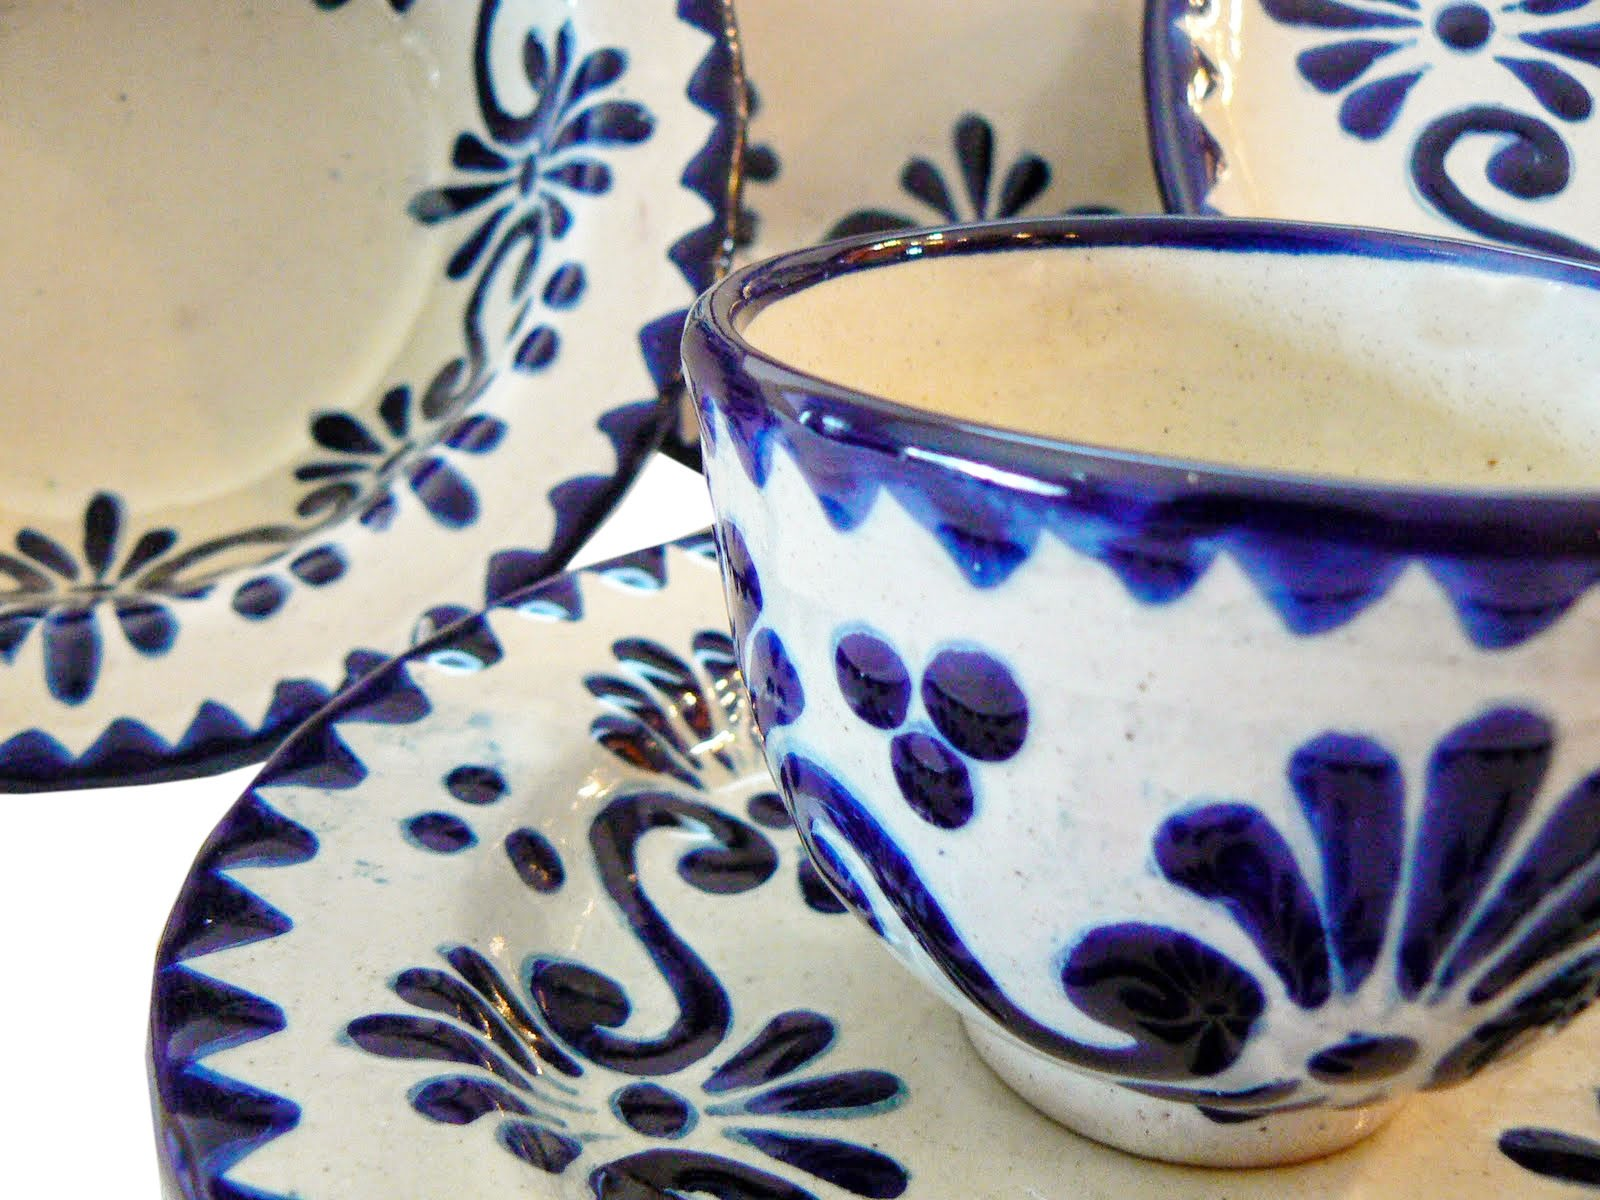 A World of Hand-Crafted Beauty: Talavera Pottery